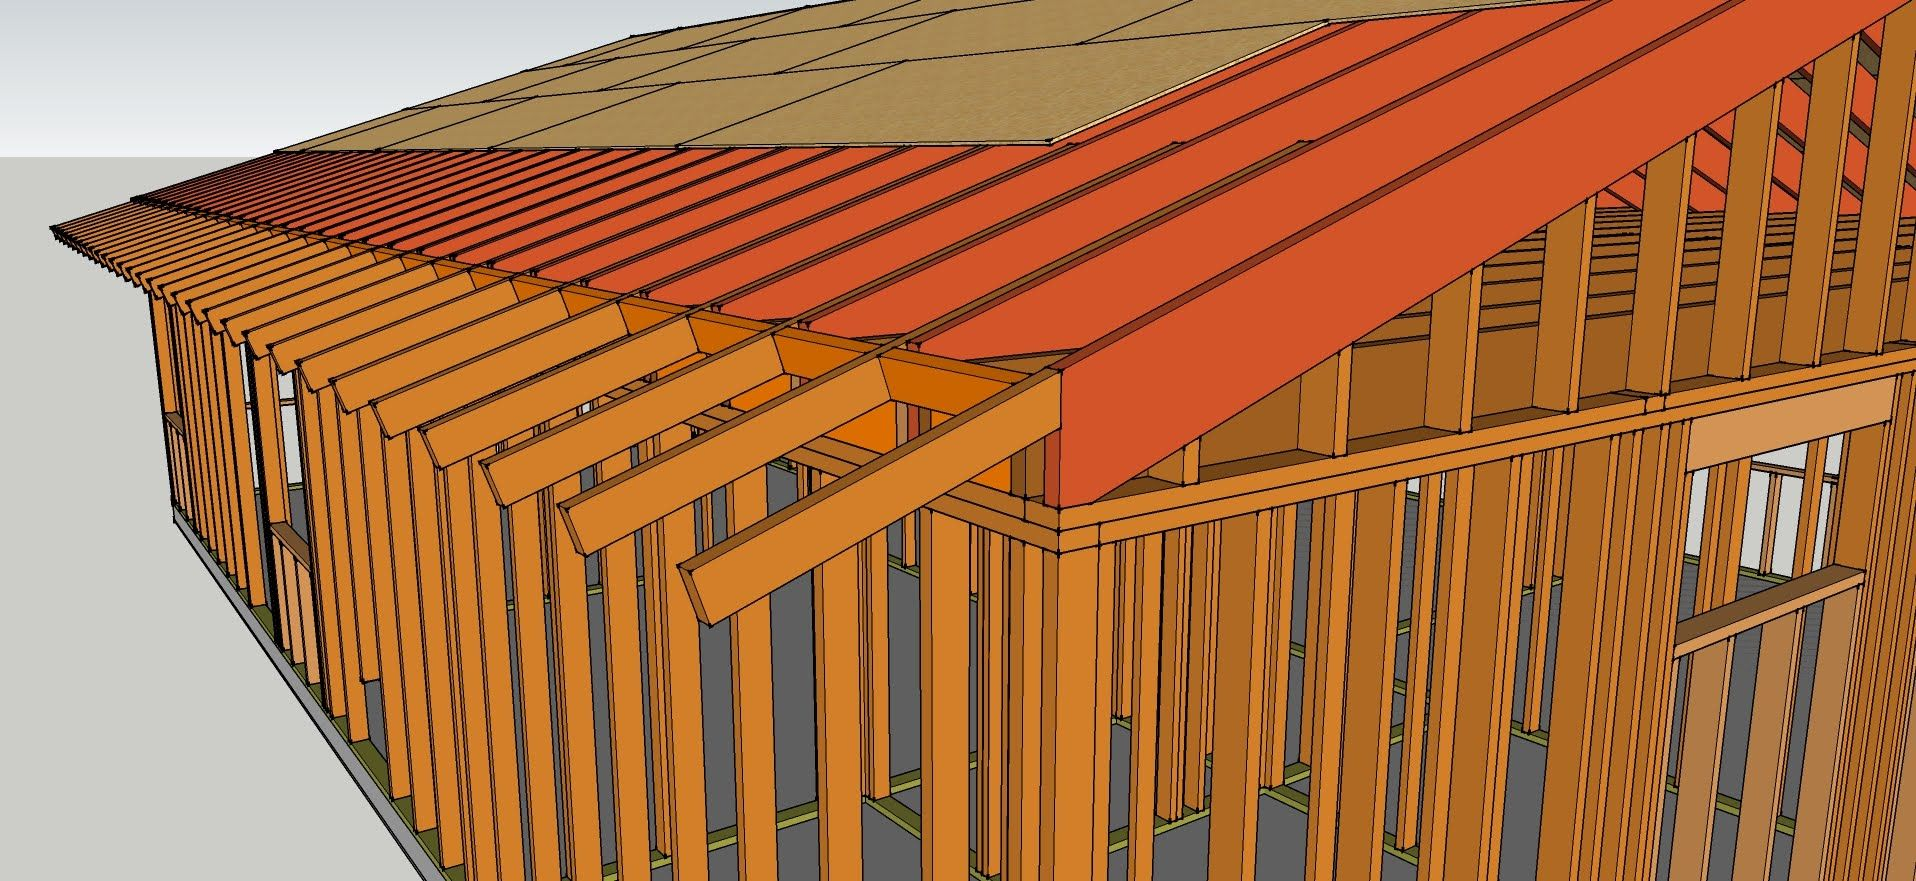 How To Extend or Add Gable Roof Overhang - Remodeling Tips ...